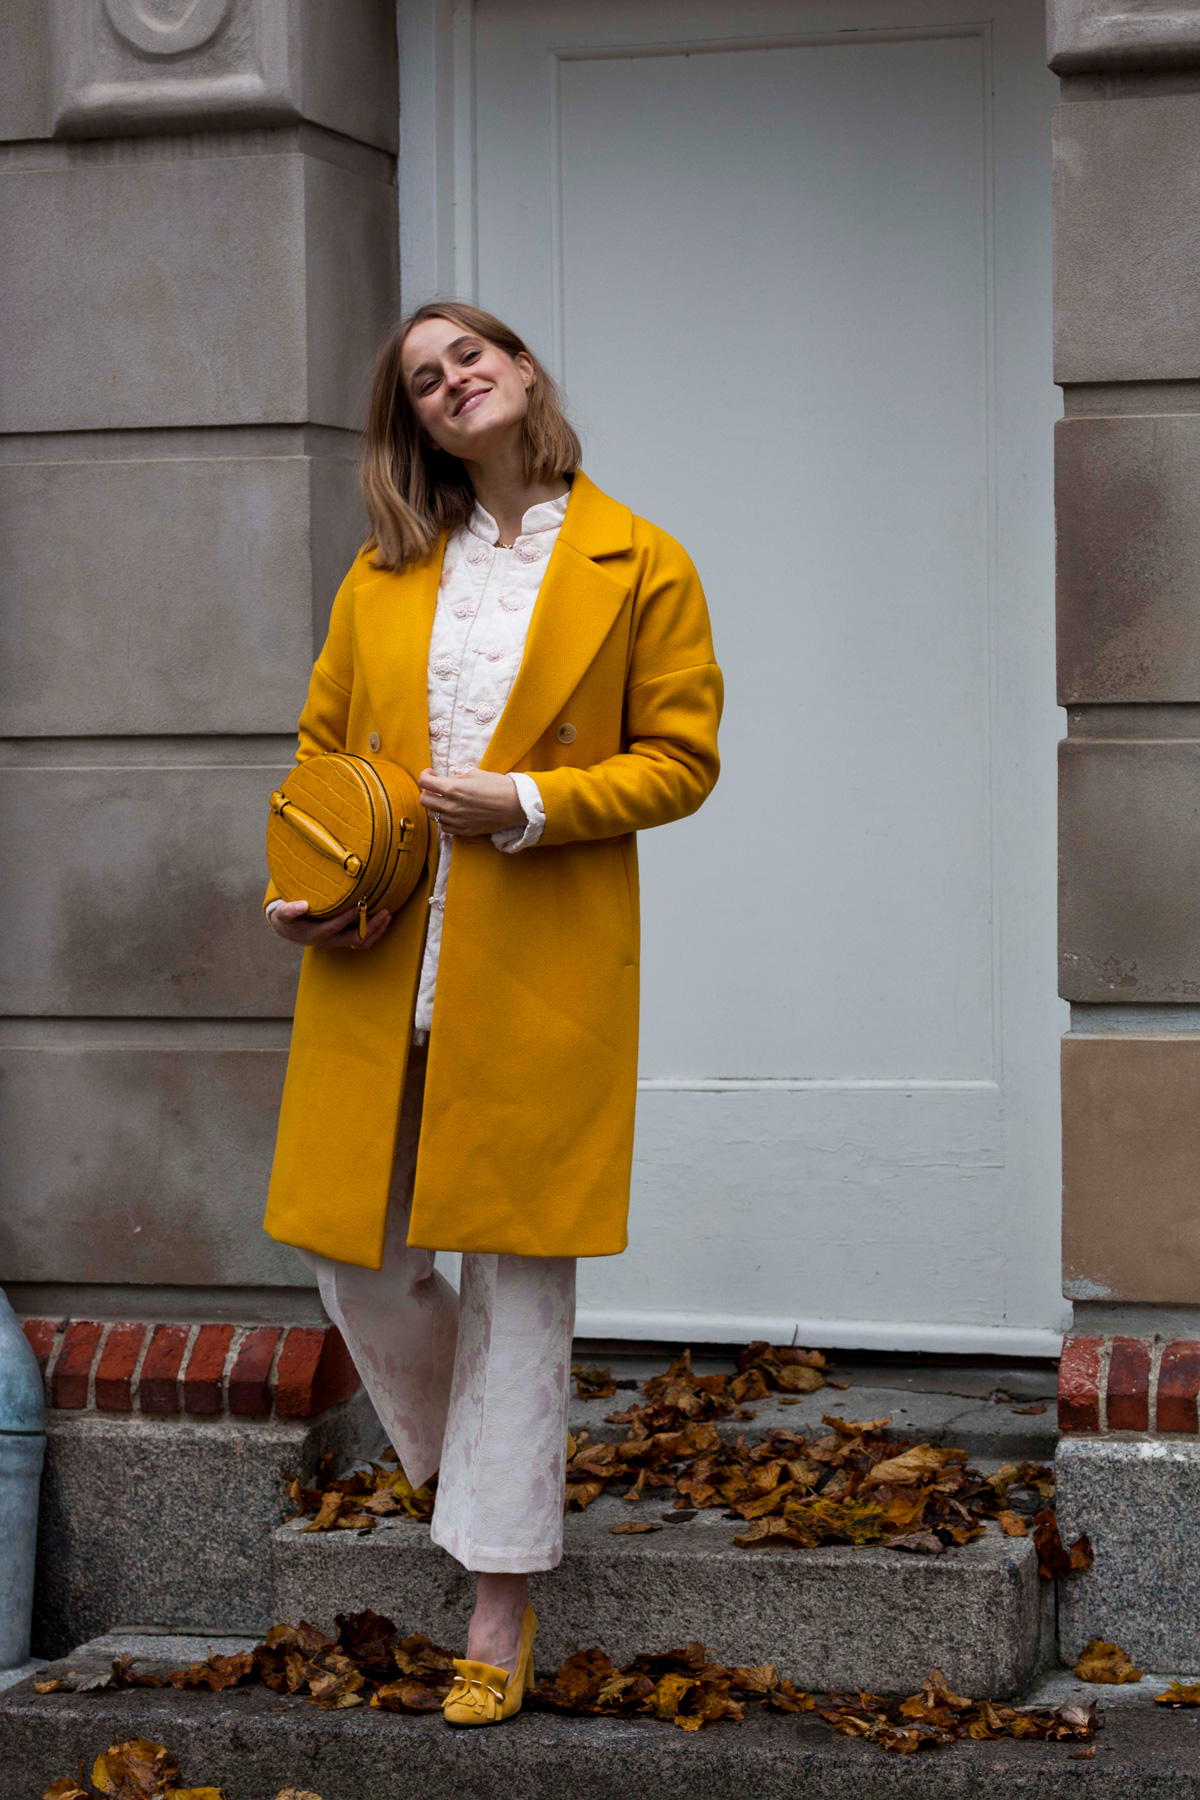 rockpaperdresses, Cathrine Widunok Wichmand, H&M My jacket my day